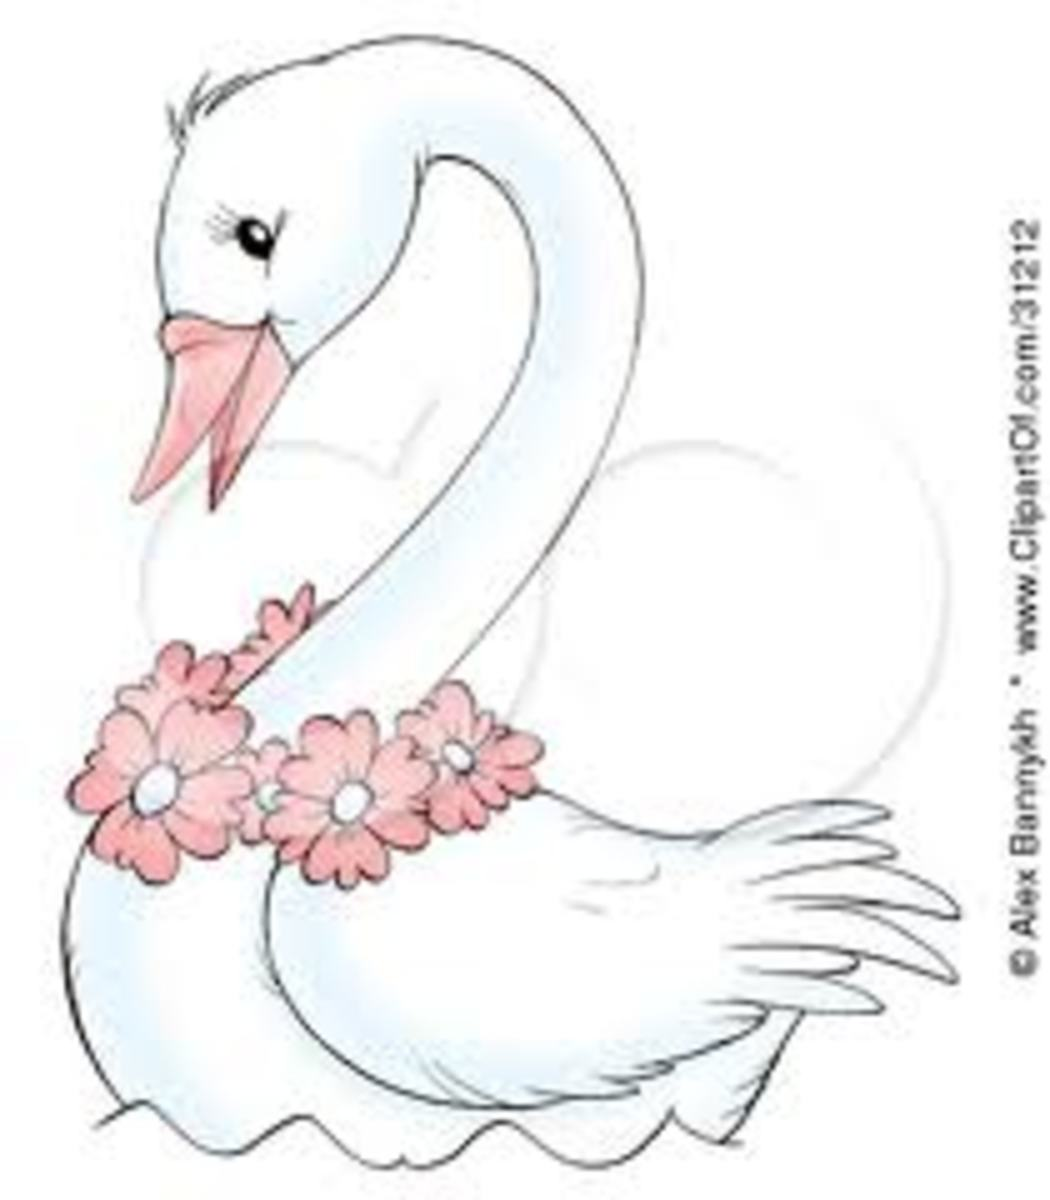 white-and-black-swan-tattoos-and-history-swan-tattoo-meanings